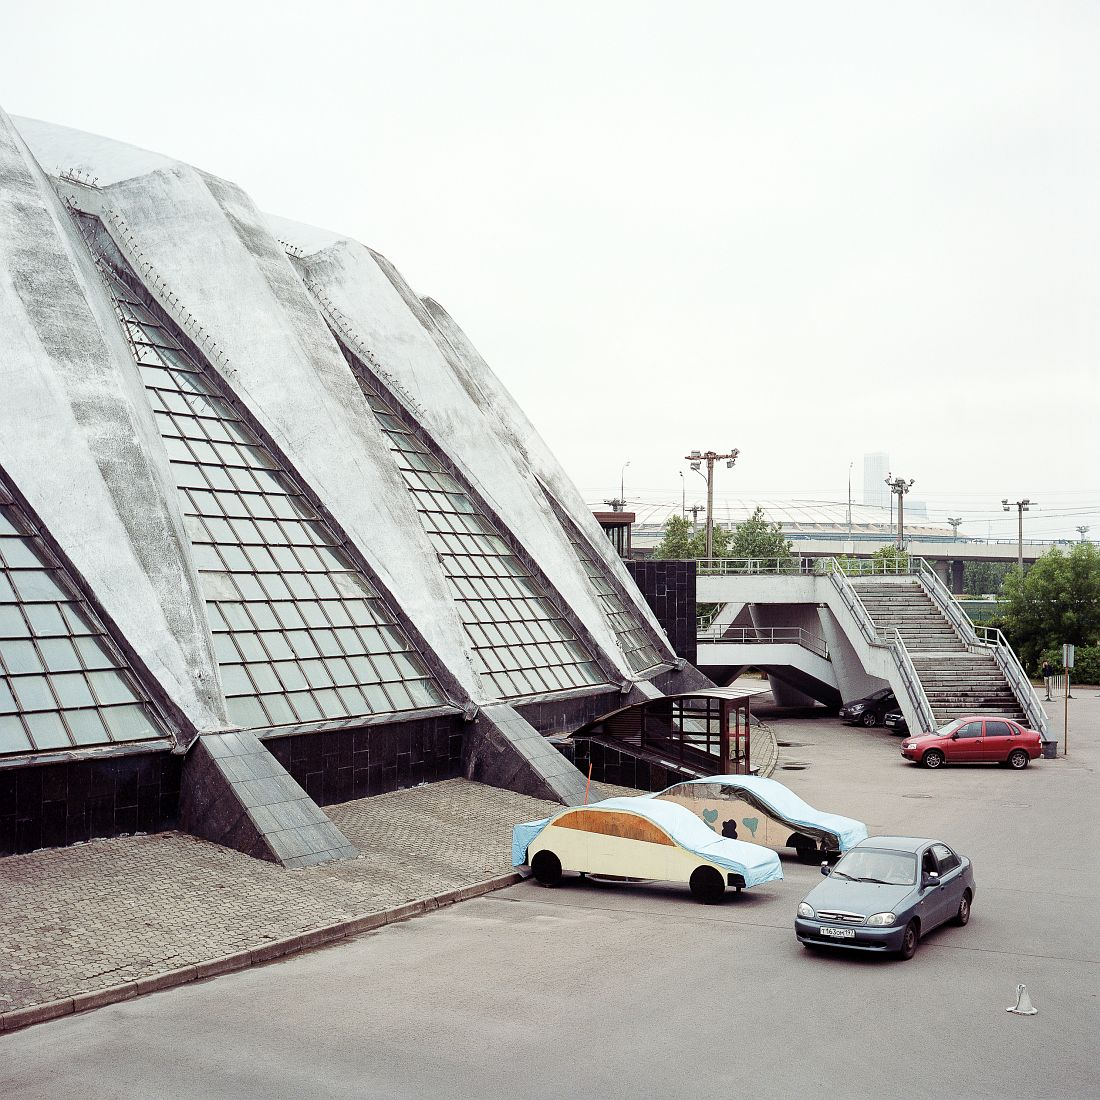 Exterior view of Druzhba Sports Complex. Druzhba Sports Complex, also completed in 1980, hosted volleyball tournaments. Currently it hosts tennis championships and music venues.